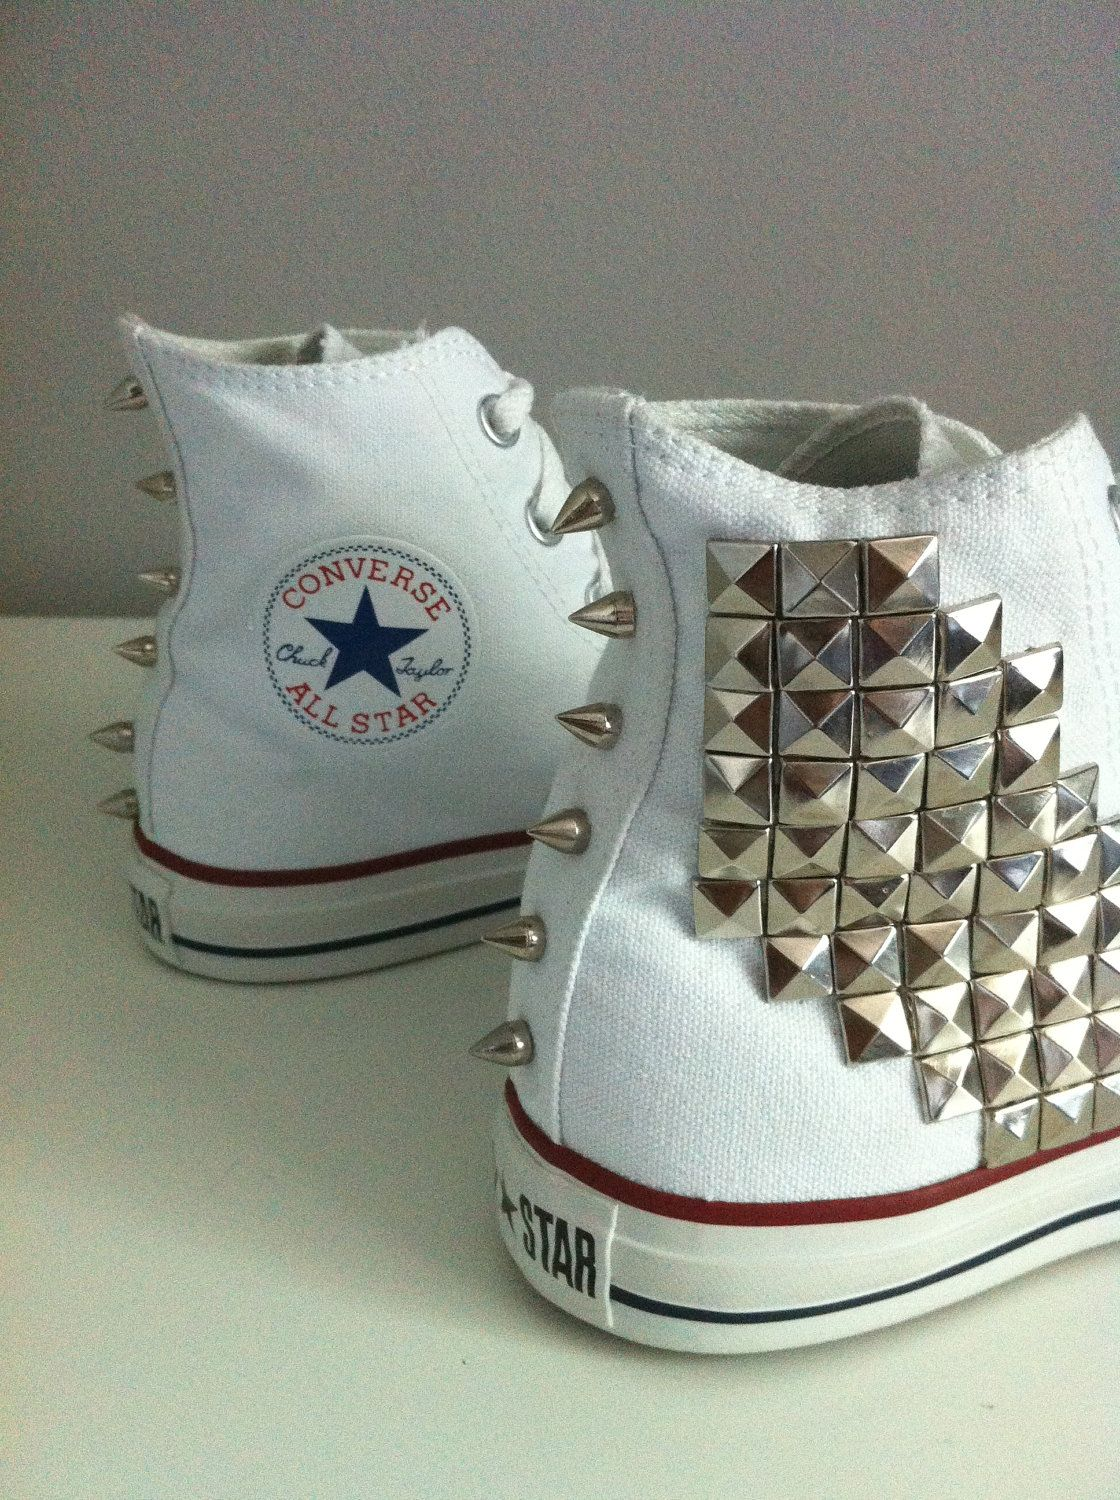 902d48f3e6c306 SALE Custom Made Any Colour Studded Hi-Top Converse All Stars With Spikes  On The Back. £70.00